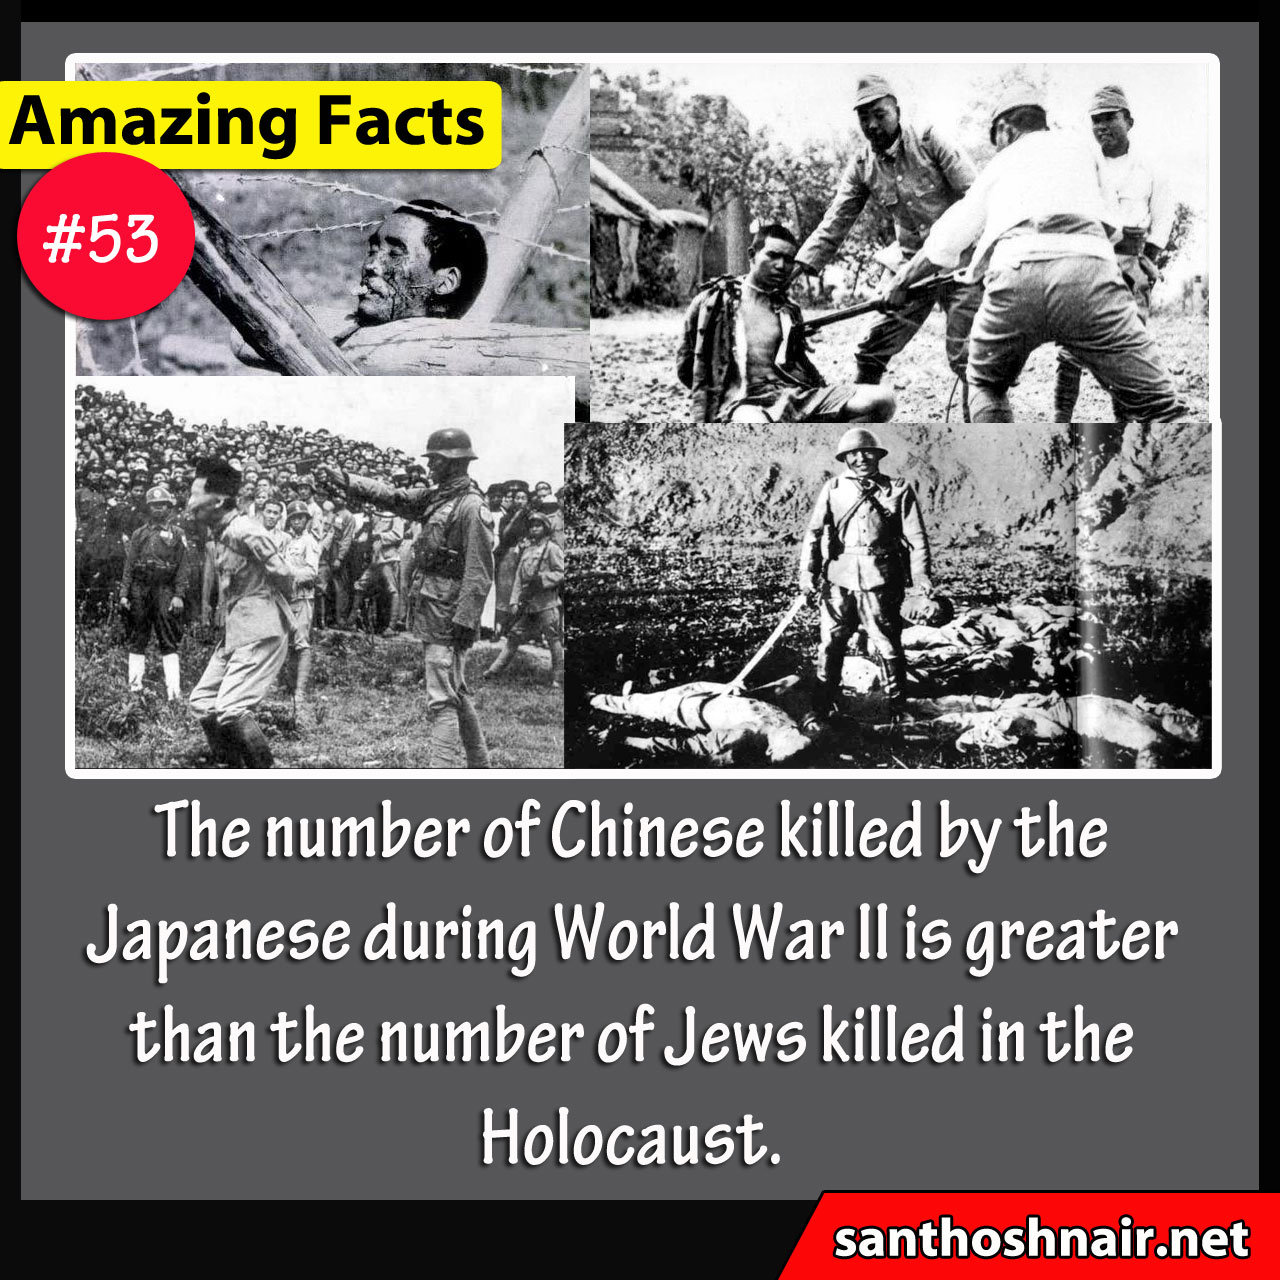 Amazing Facts #53 - Chinese Killed during WWII